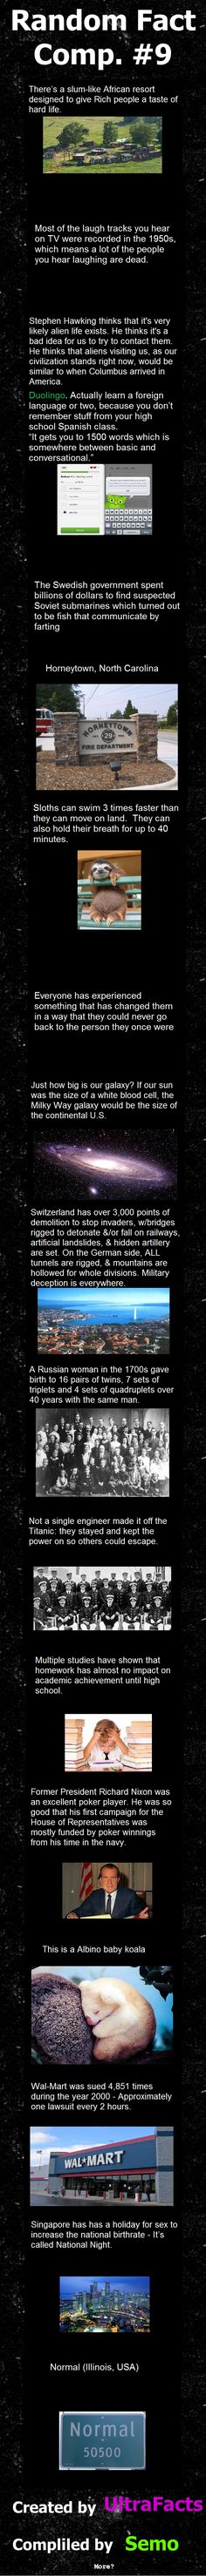 Random Fact Comp. 9 // funny pictures - funny photos - funny images - funny pics - funny quotes - #lol #humor #funnypictures